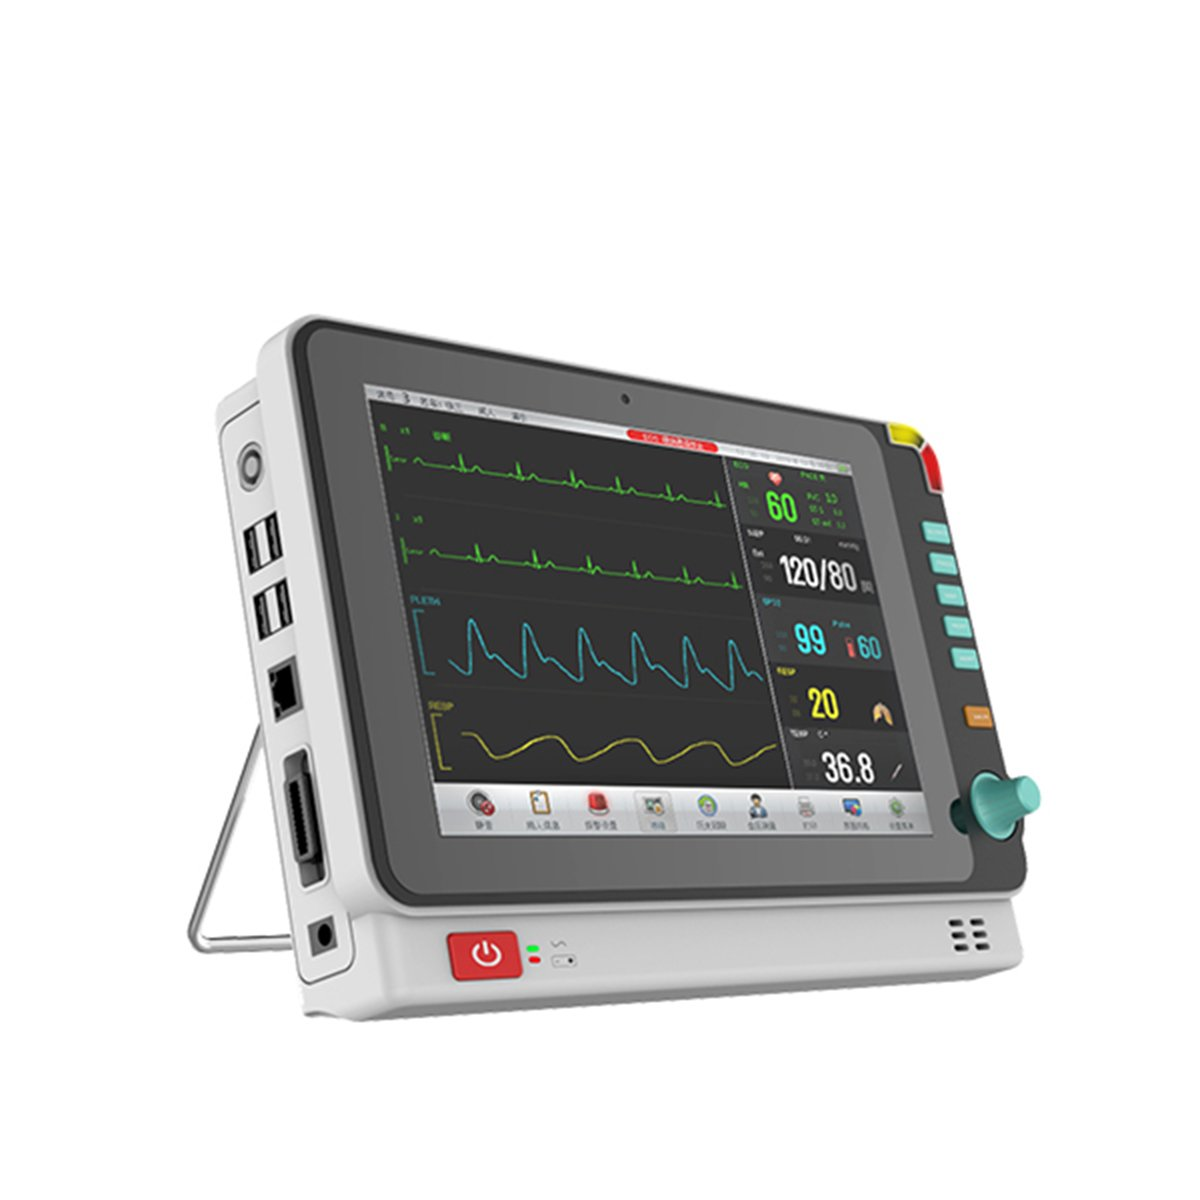 10.1 Inch Color Portable Patient Monitor with 6 parameter to monitor Vital Sign ECG NIBP RESP TEMP SPO2 PR